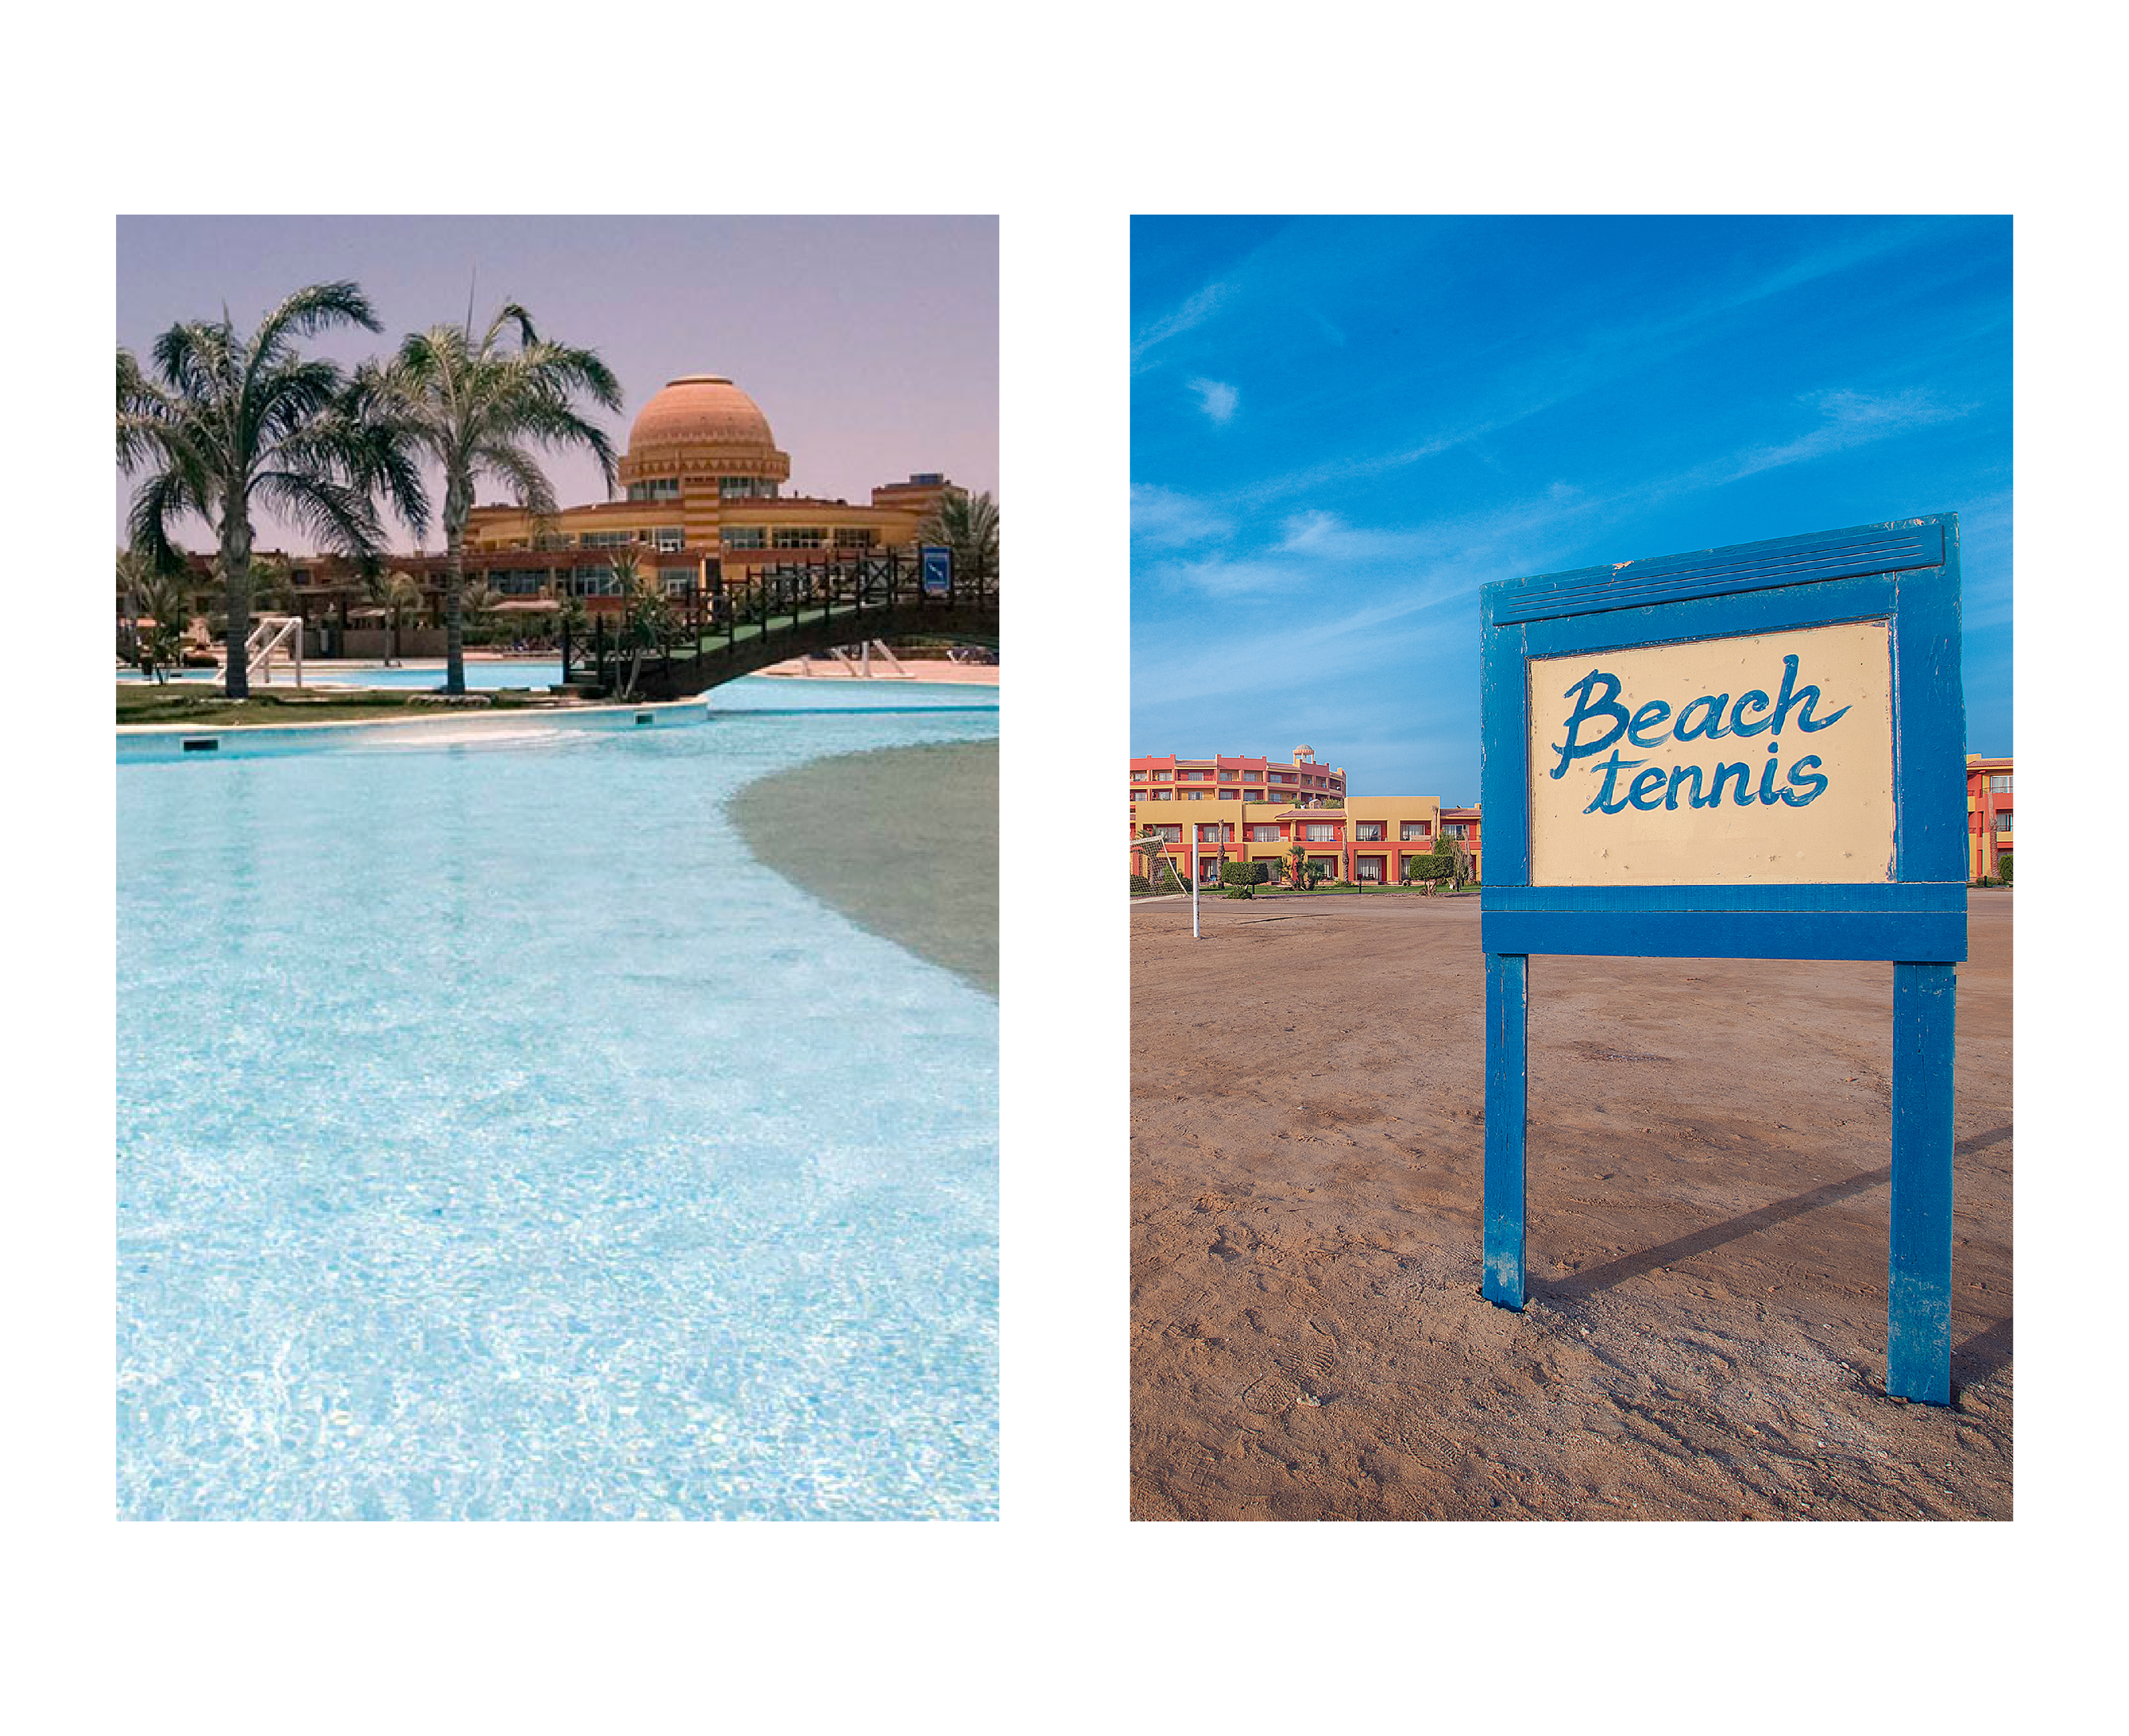 Swimming pool and a sign on the beach